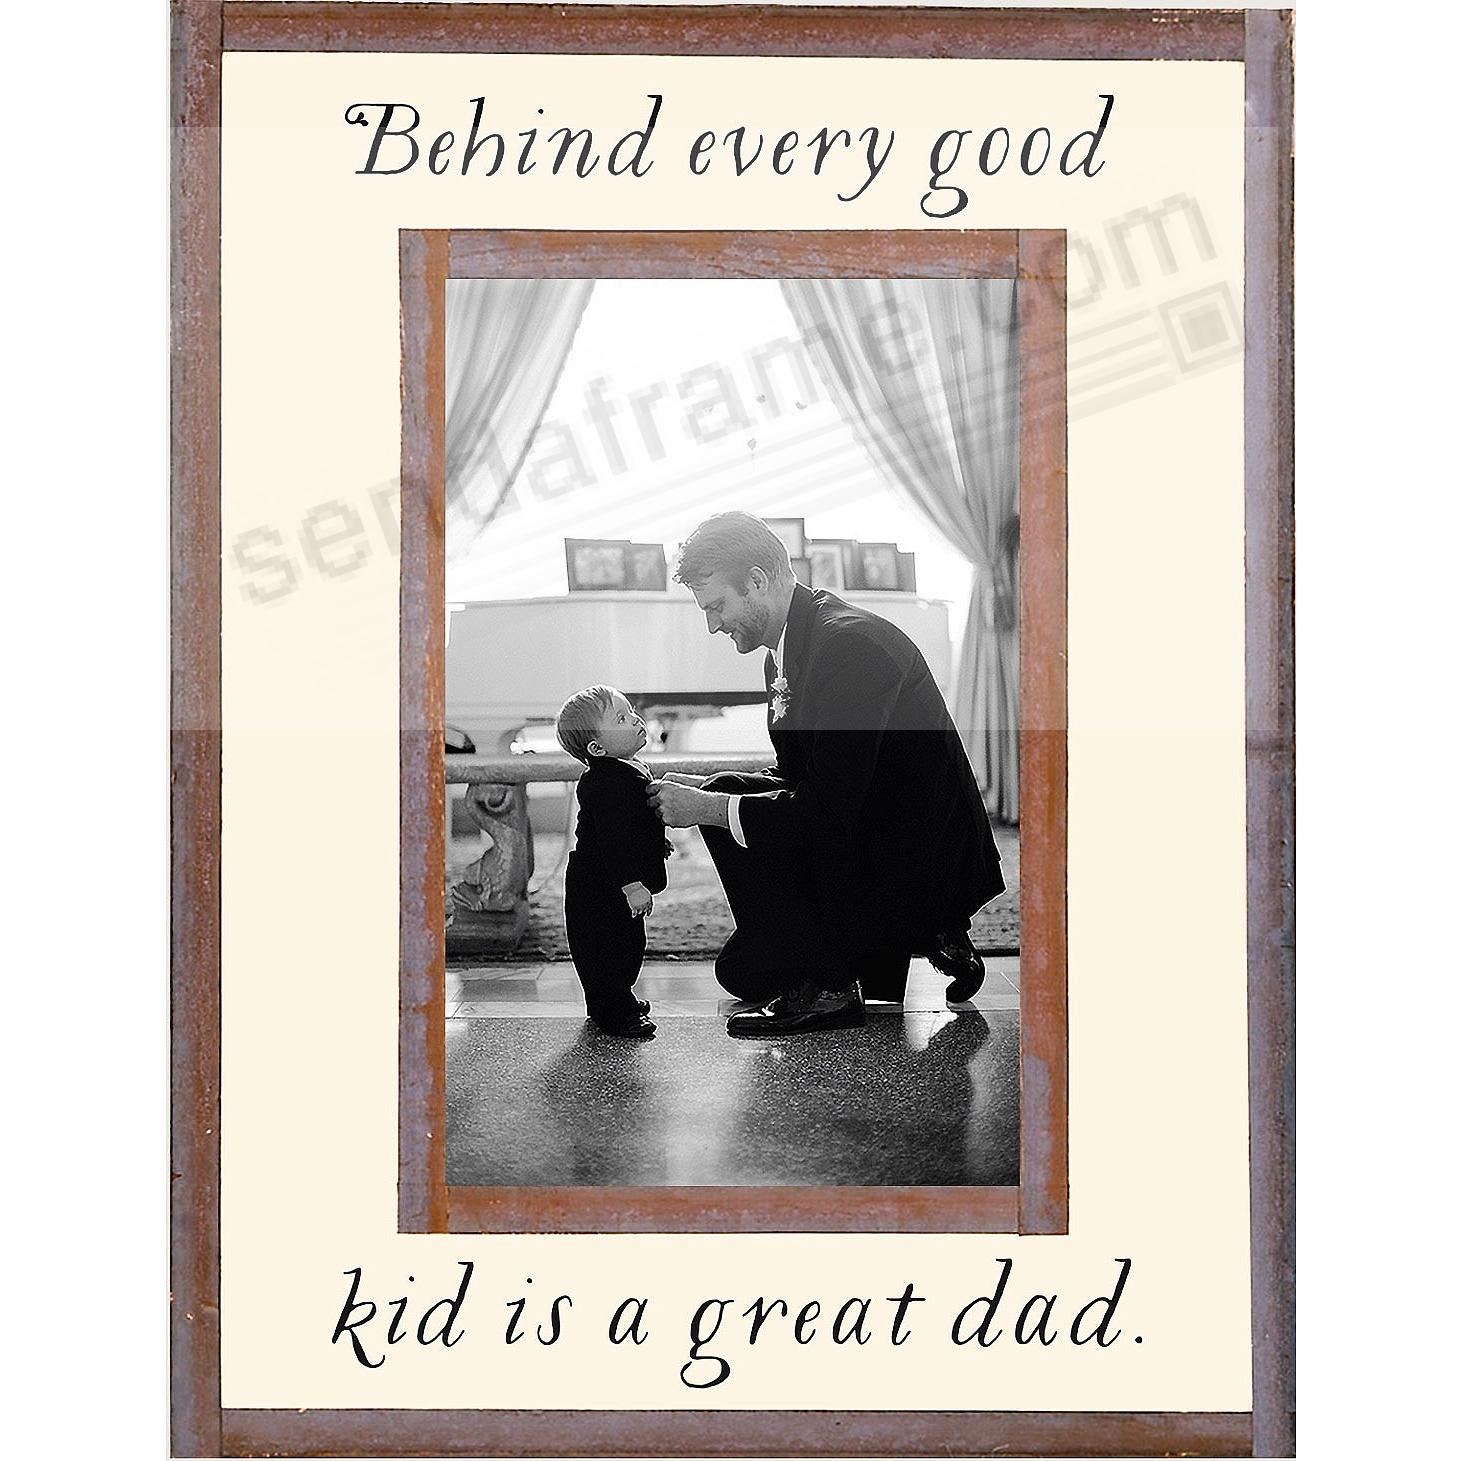 BEHIND EVERY GOOD KID IS A GREAT DAD Copper + Clear Glass by Ben's Garden®